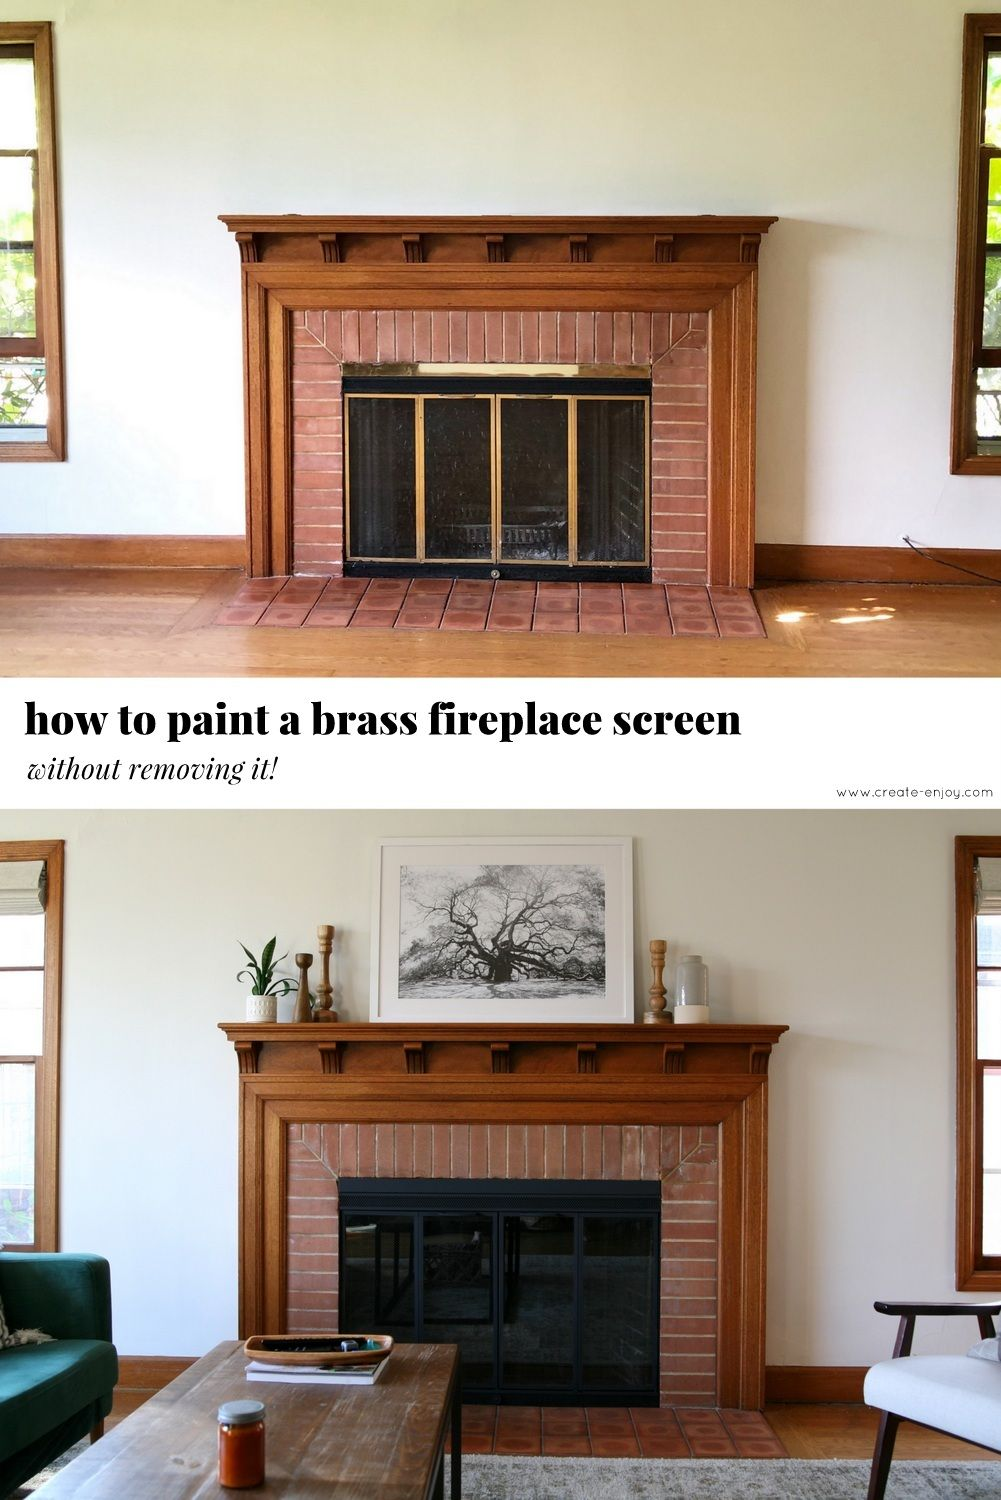 How To Paint A Brass Fireplace Screen Without Removing It